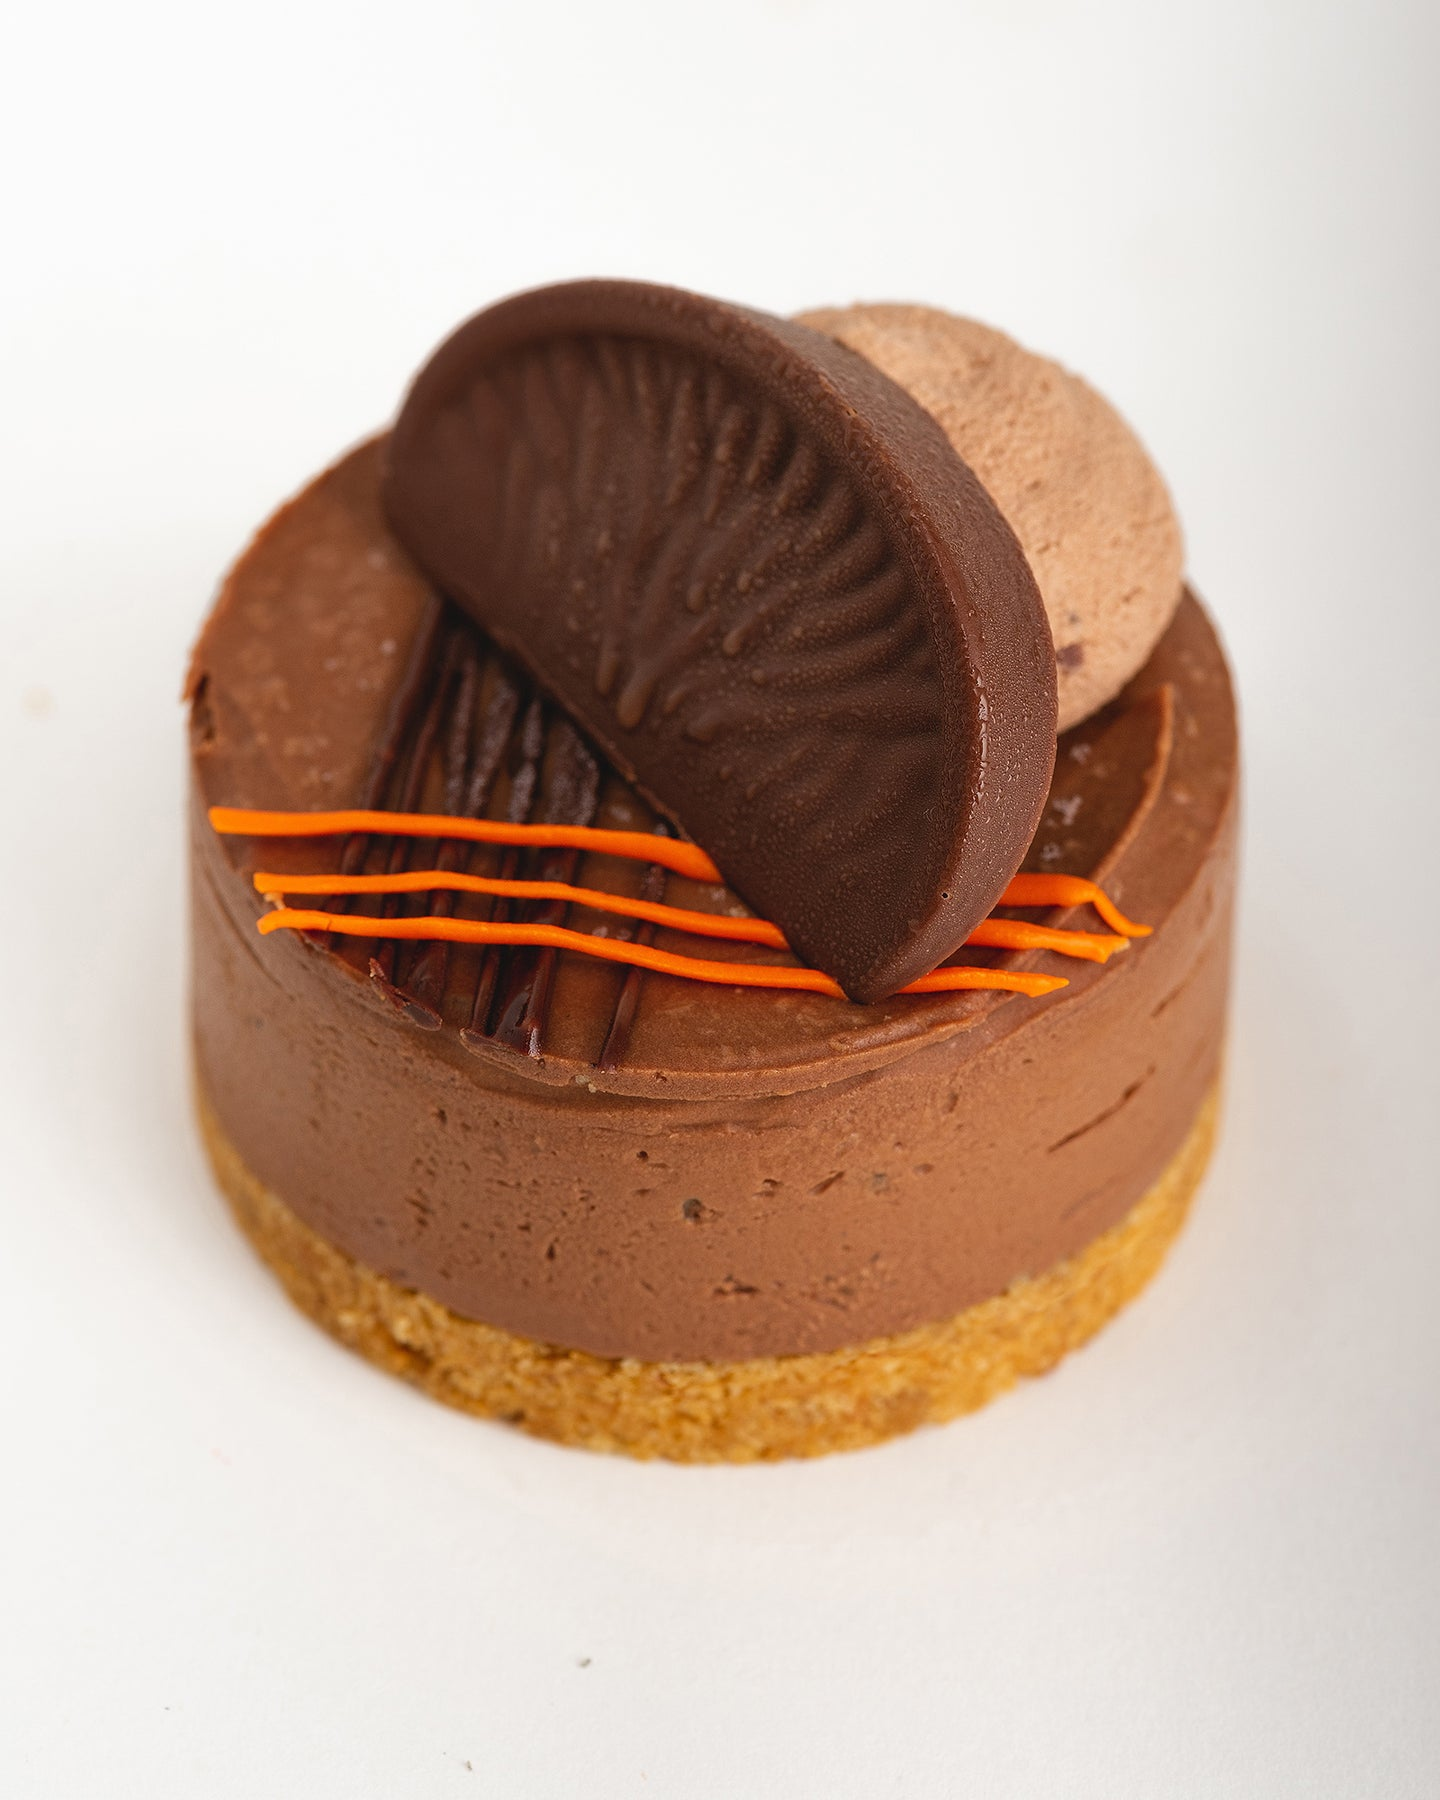 Individual Terry's Chocolate Orange Cheesecake